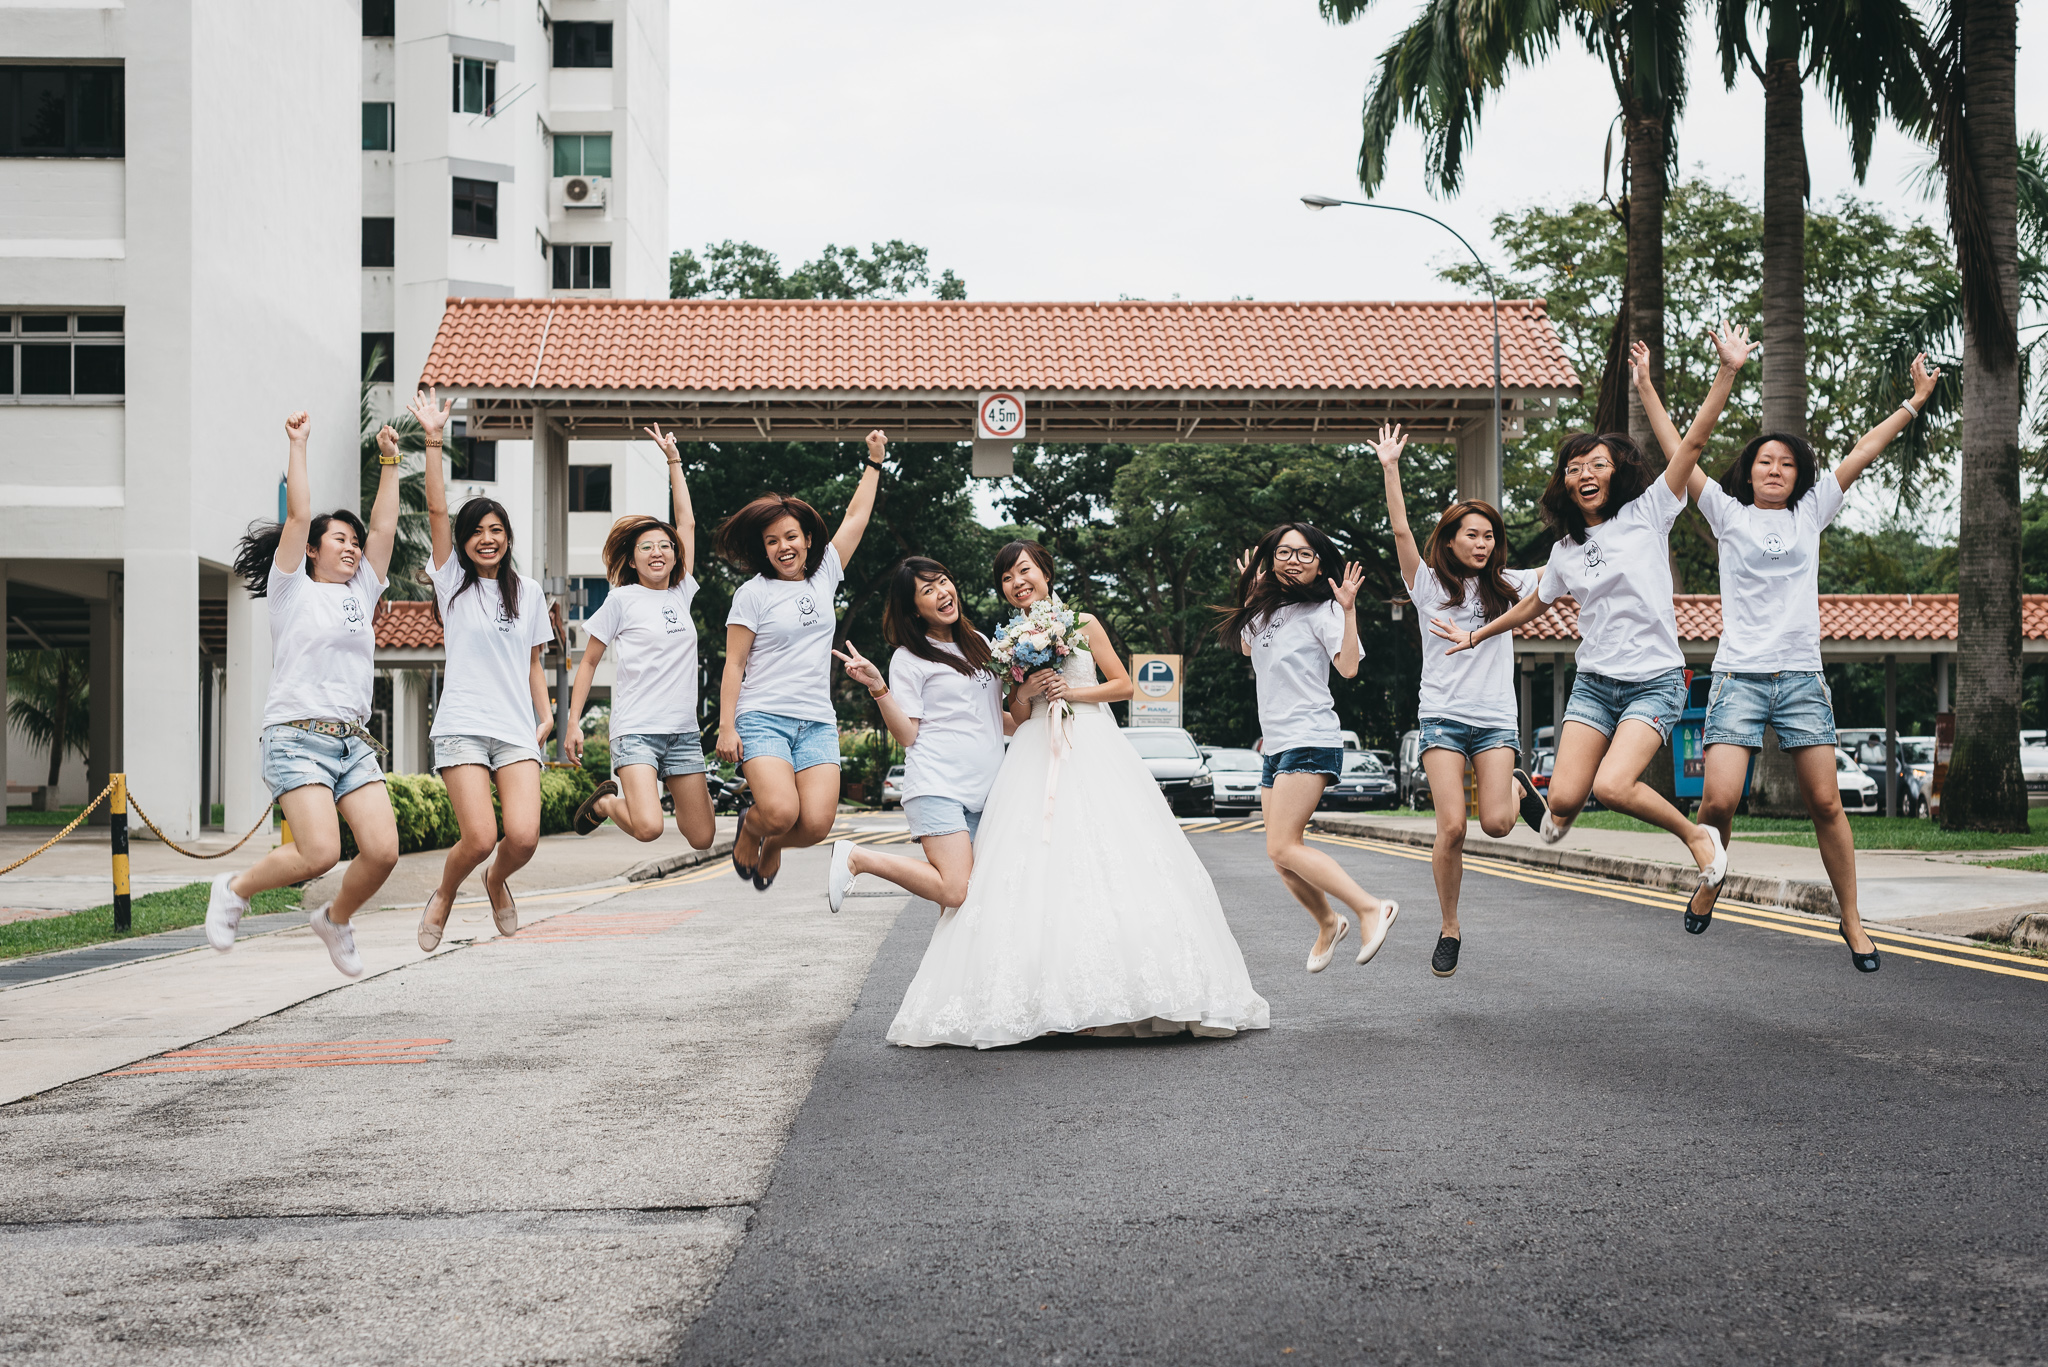 Alice & Wei Bang Wedding Day Highlights (resized for sharing) - 055.jpg